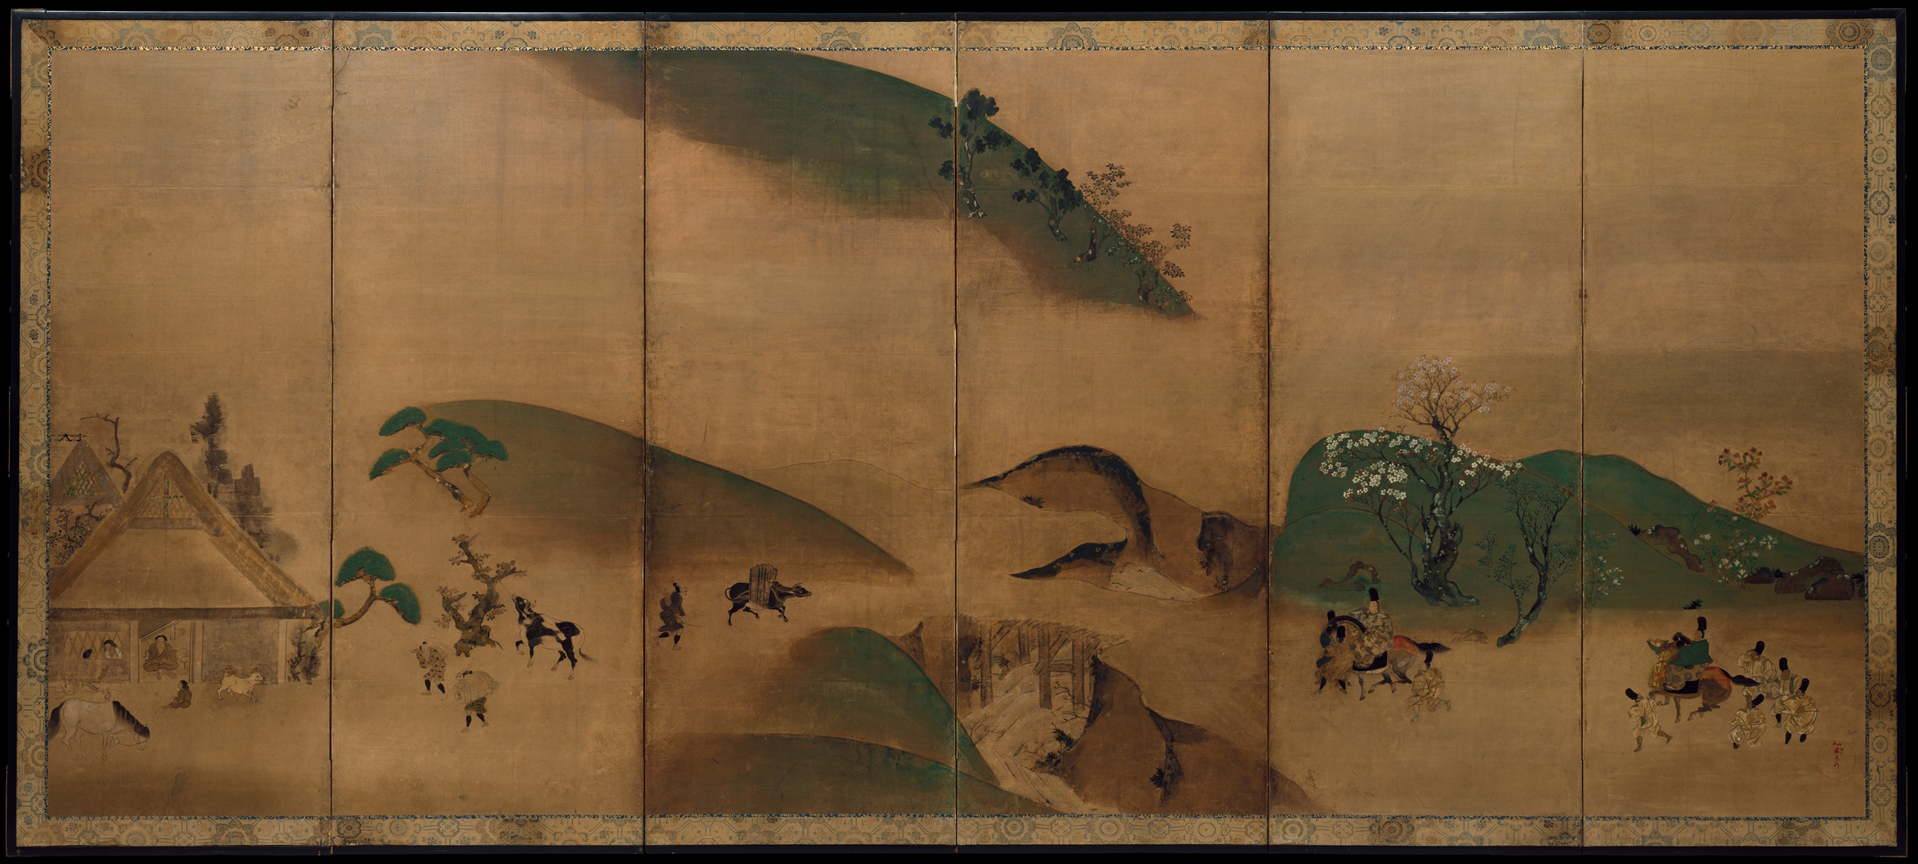 the tale of the heike essay The tale of the heike is a collection of tales that depict the livelihood of warriors during the heian and kamakura period these tales illustrate that warriors.